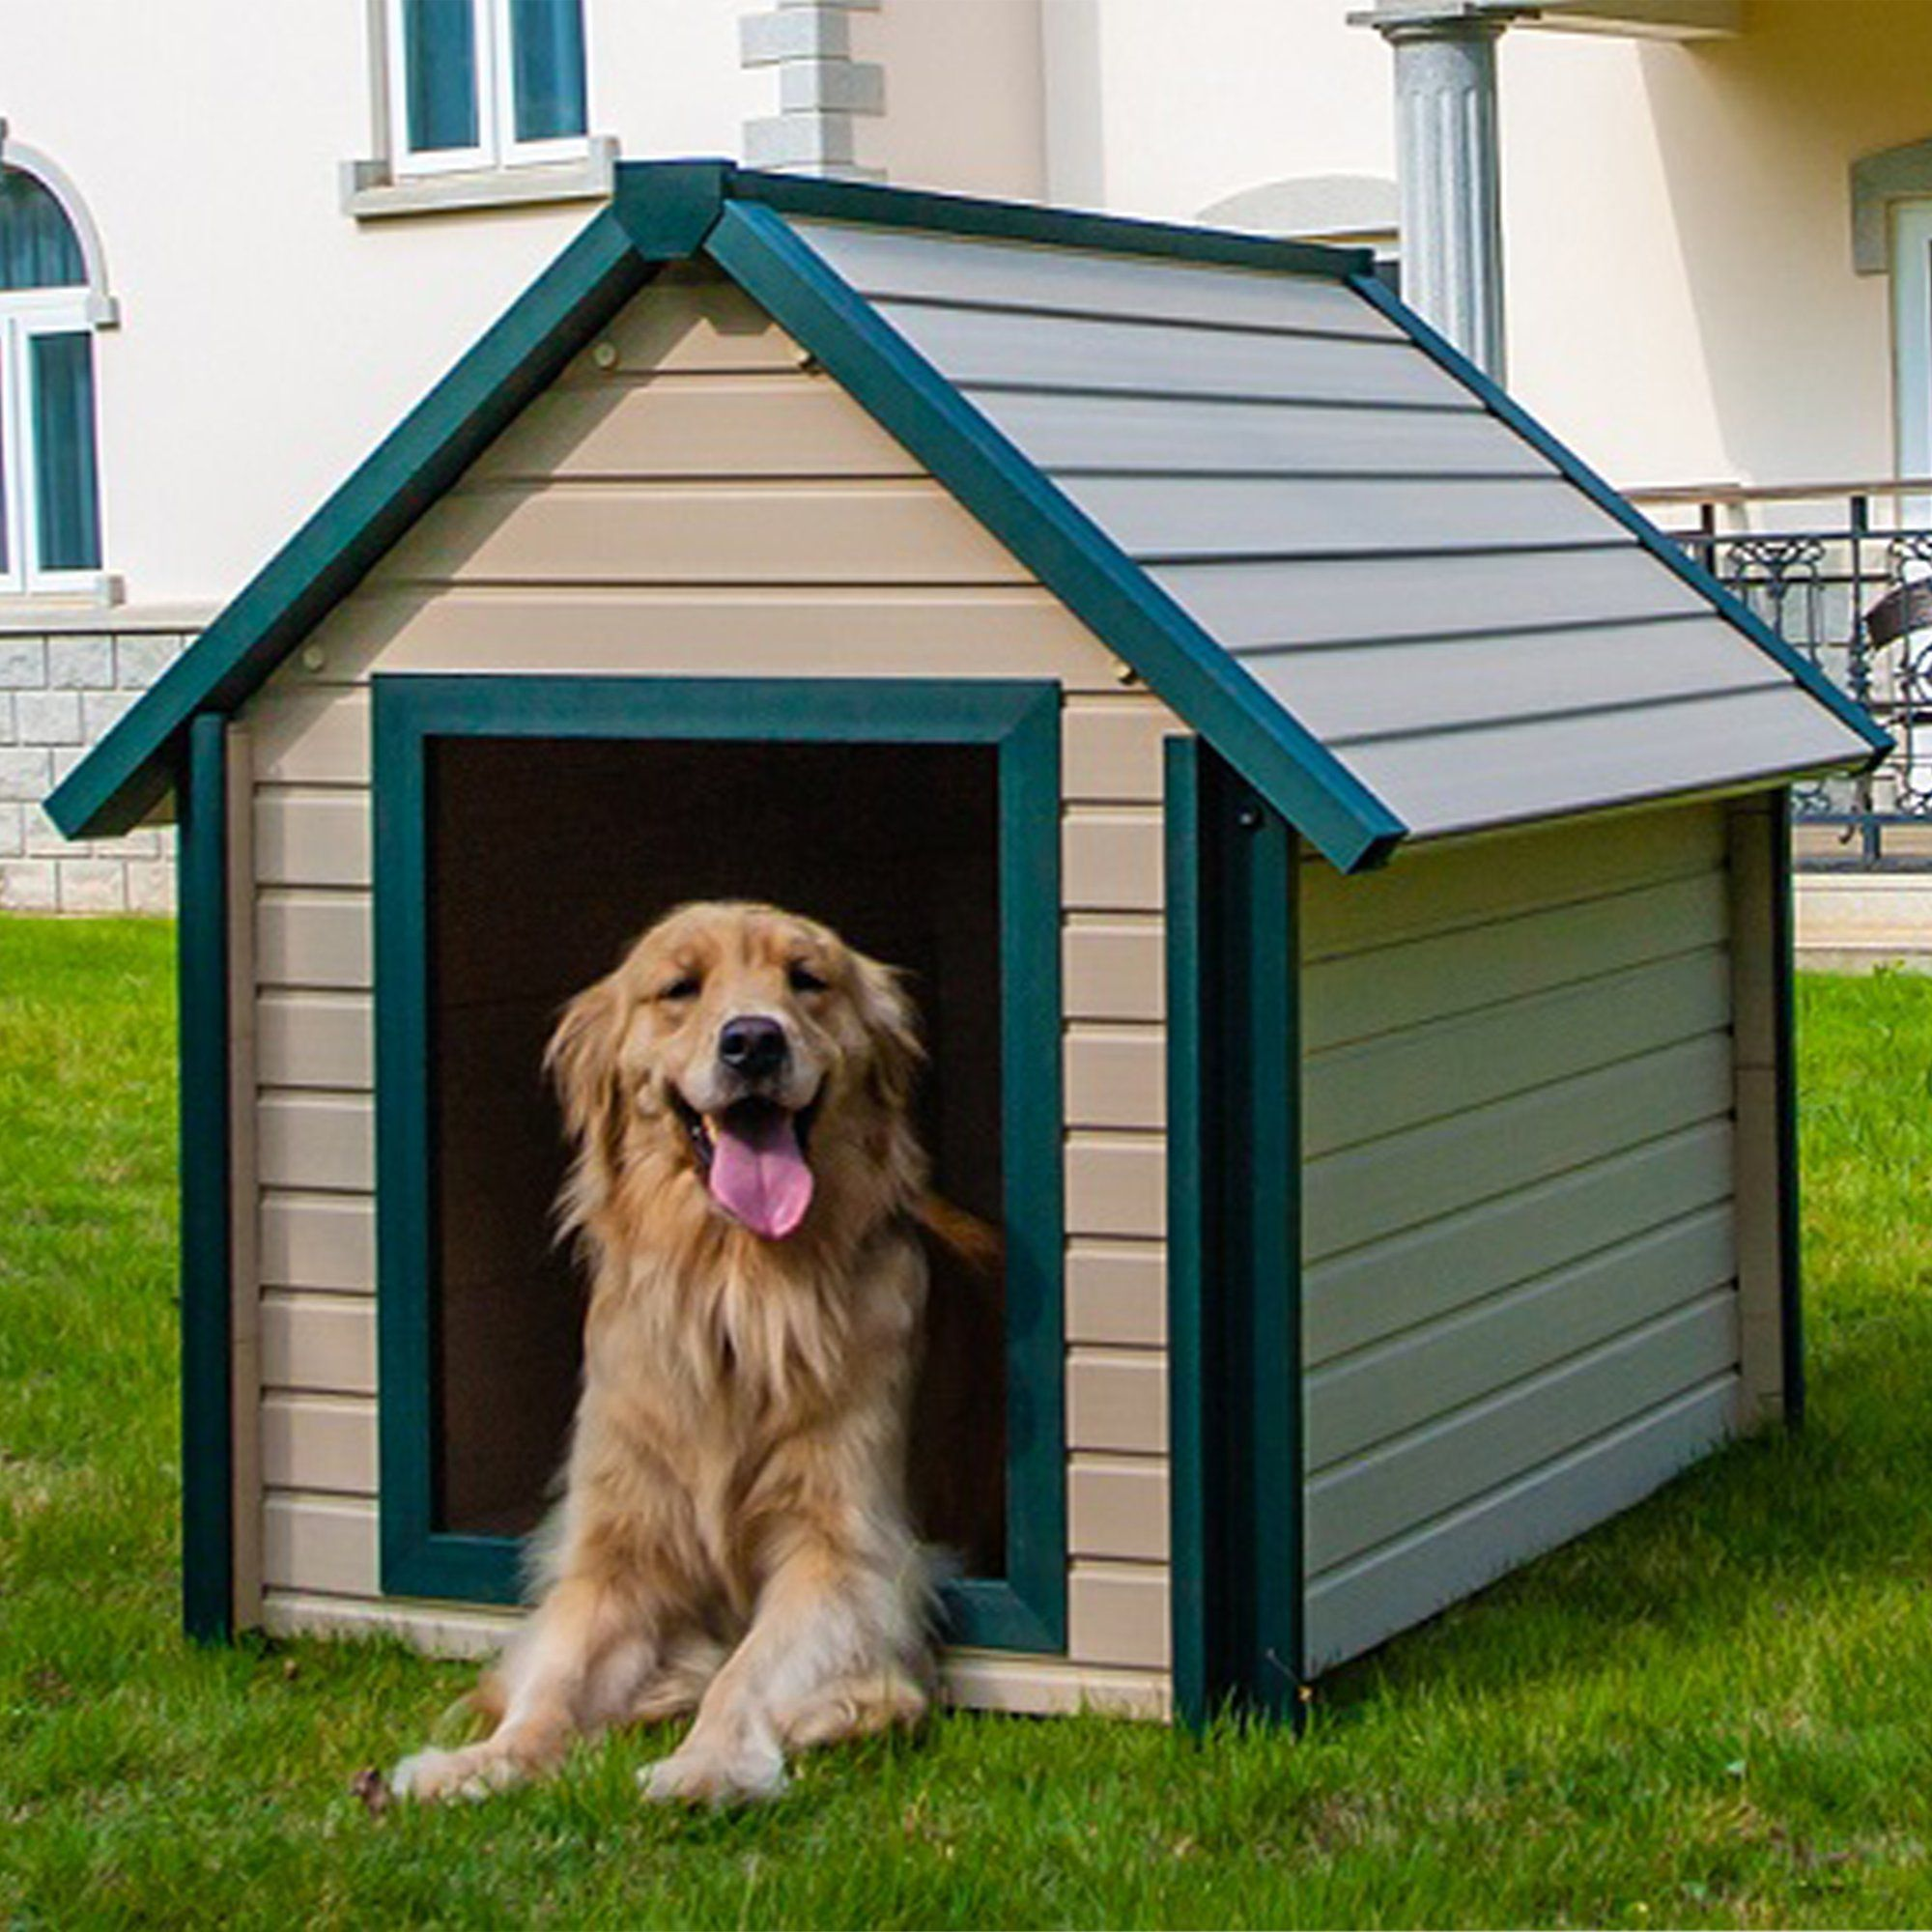 New Age Pet Bunkhouse Dog House, XLarge Petco in 2020